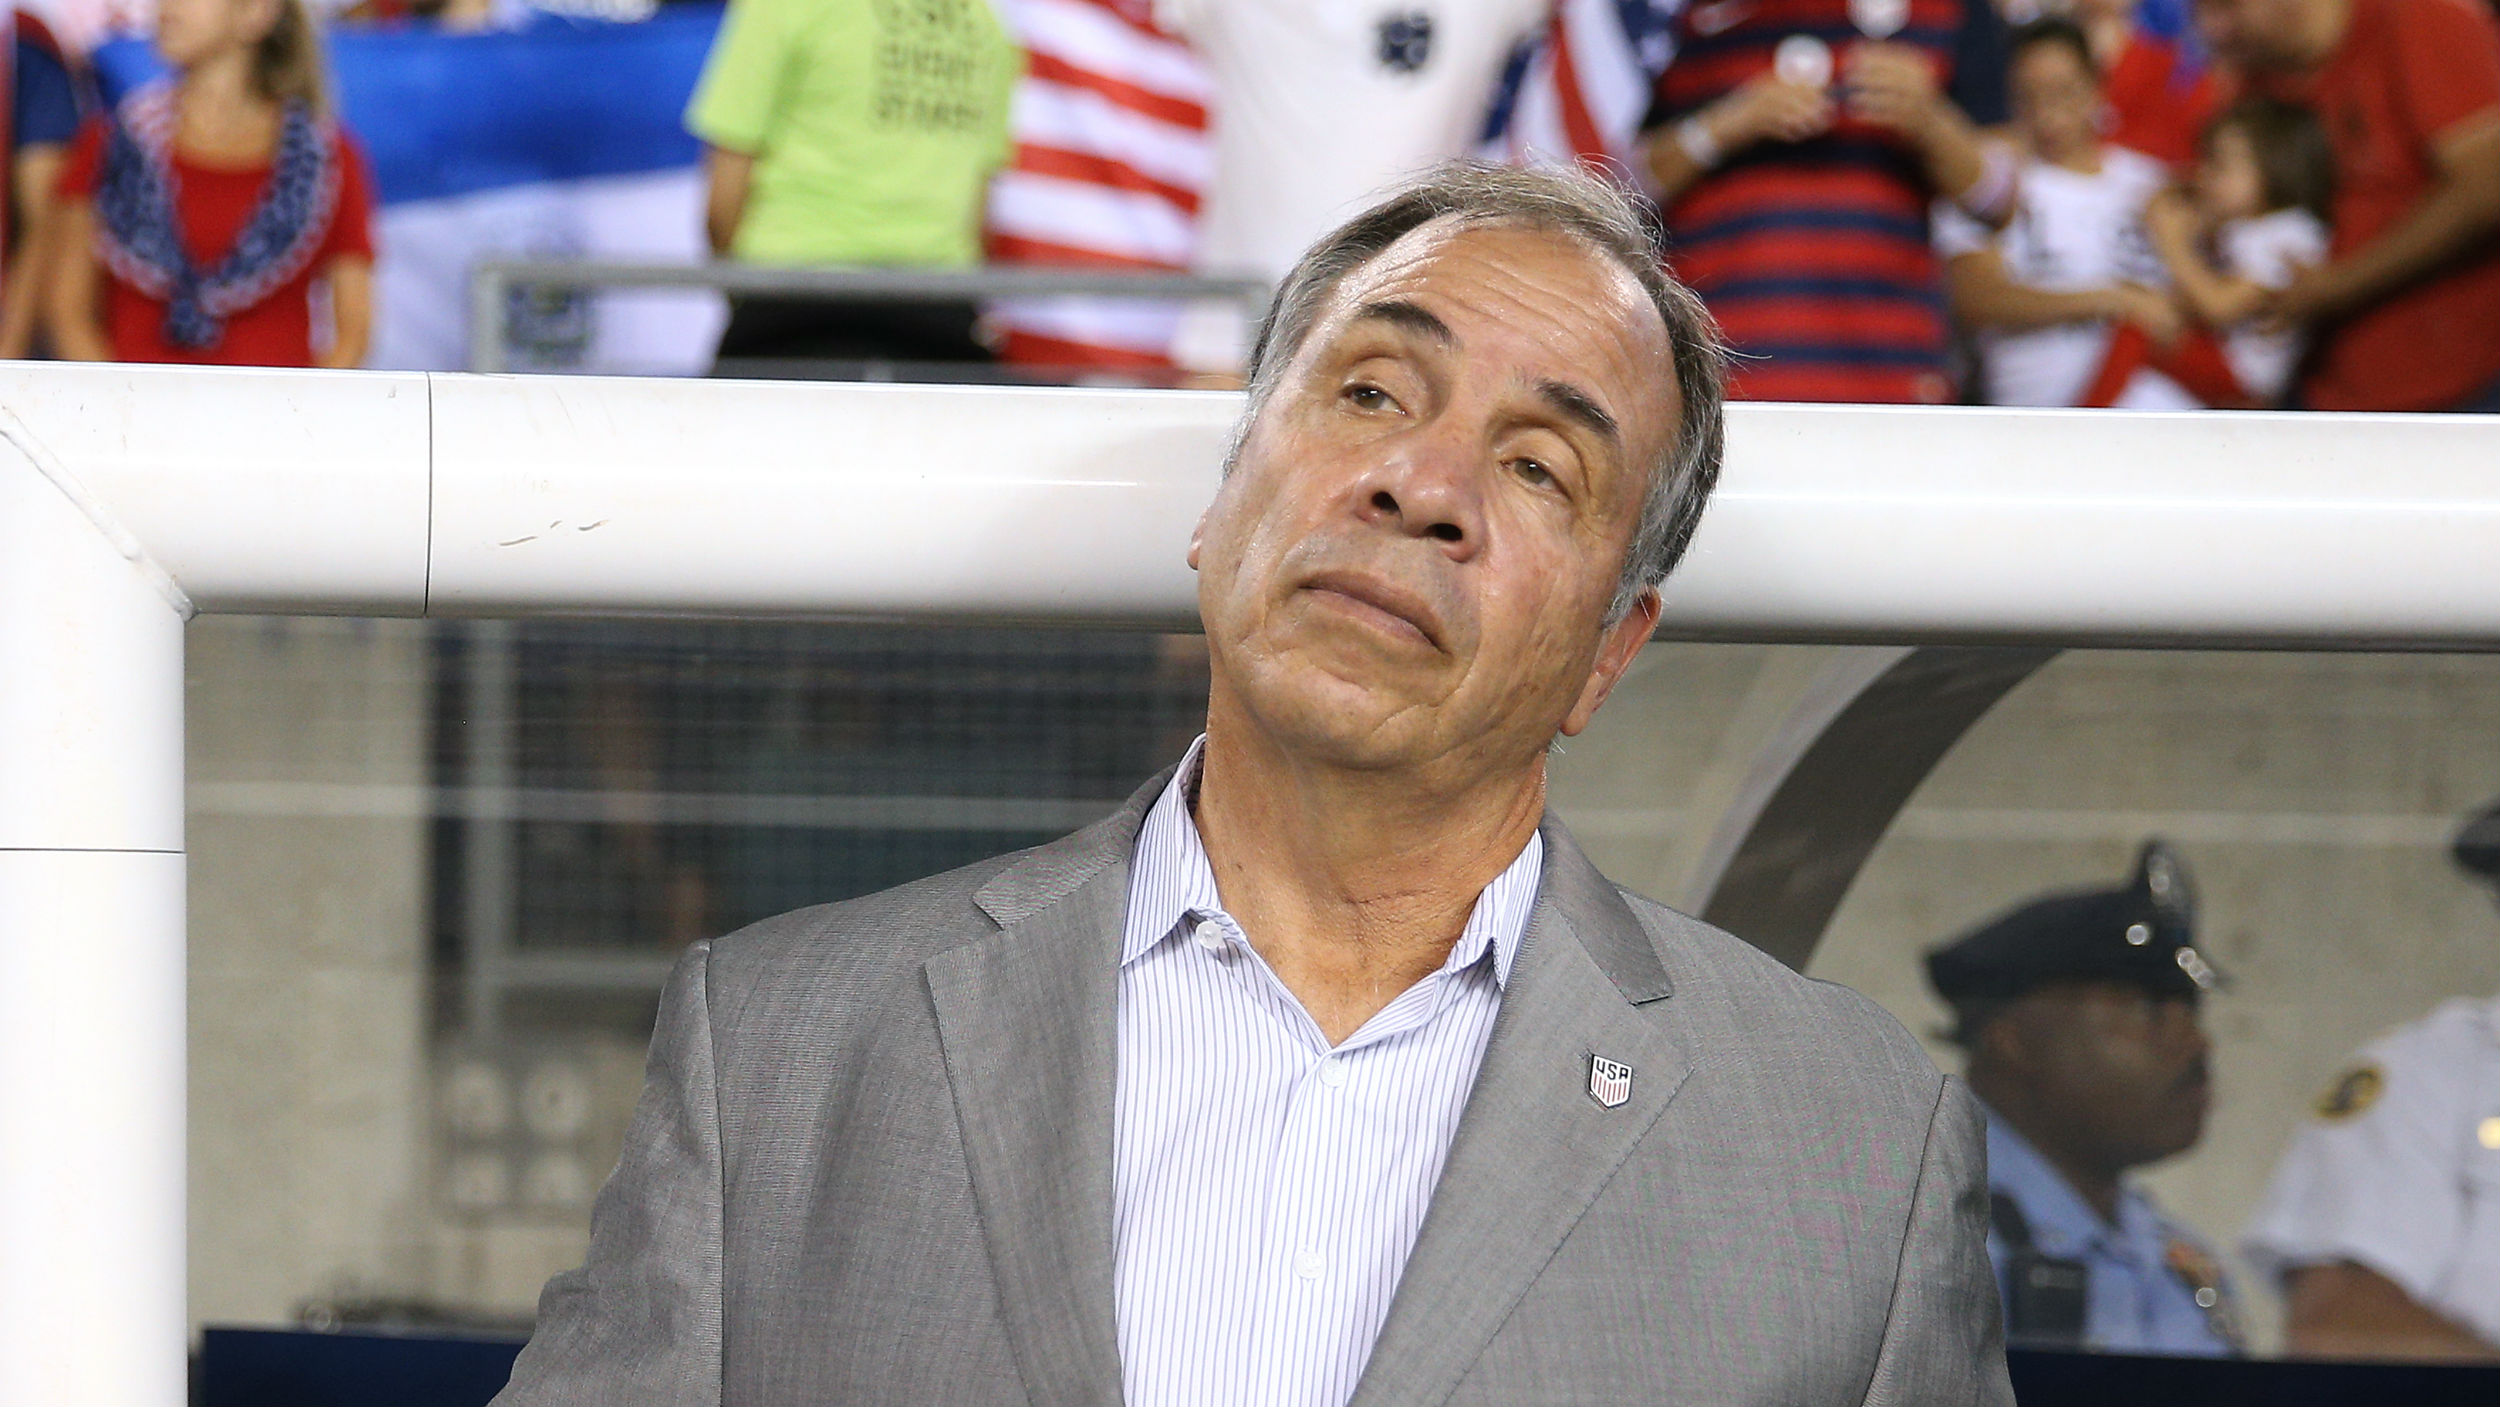 'I think it's inappropriate' - Former USMNT boss Arena sees no reason to play national anthem before sporting events